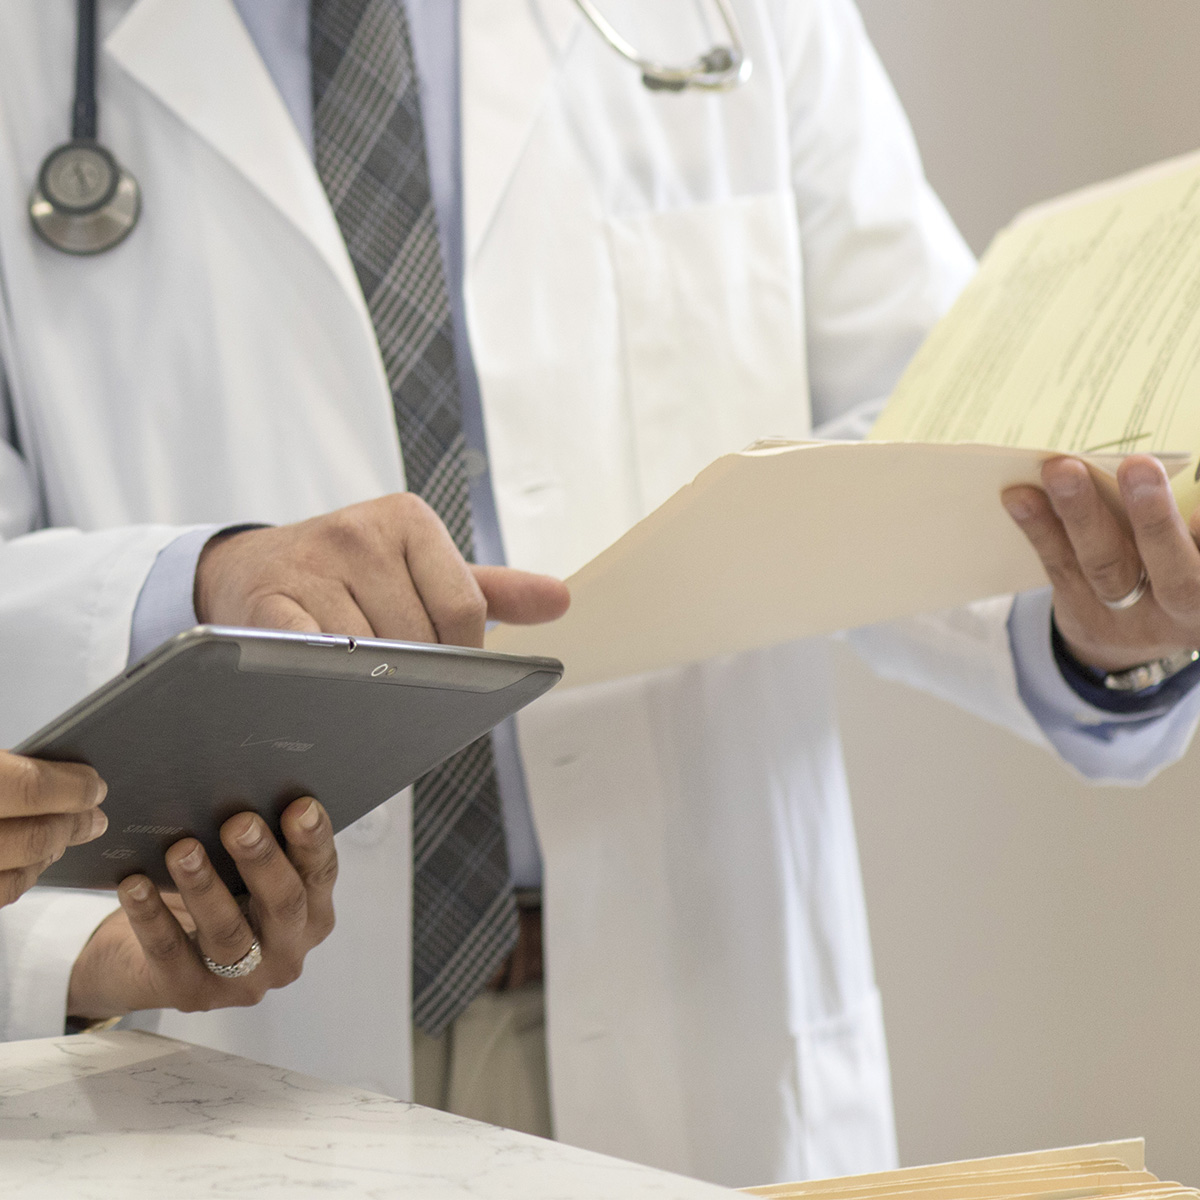 A close up on two doctors hands as one reviews information on a tablet and the other references a file.